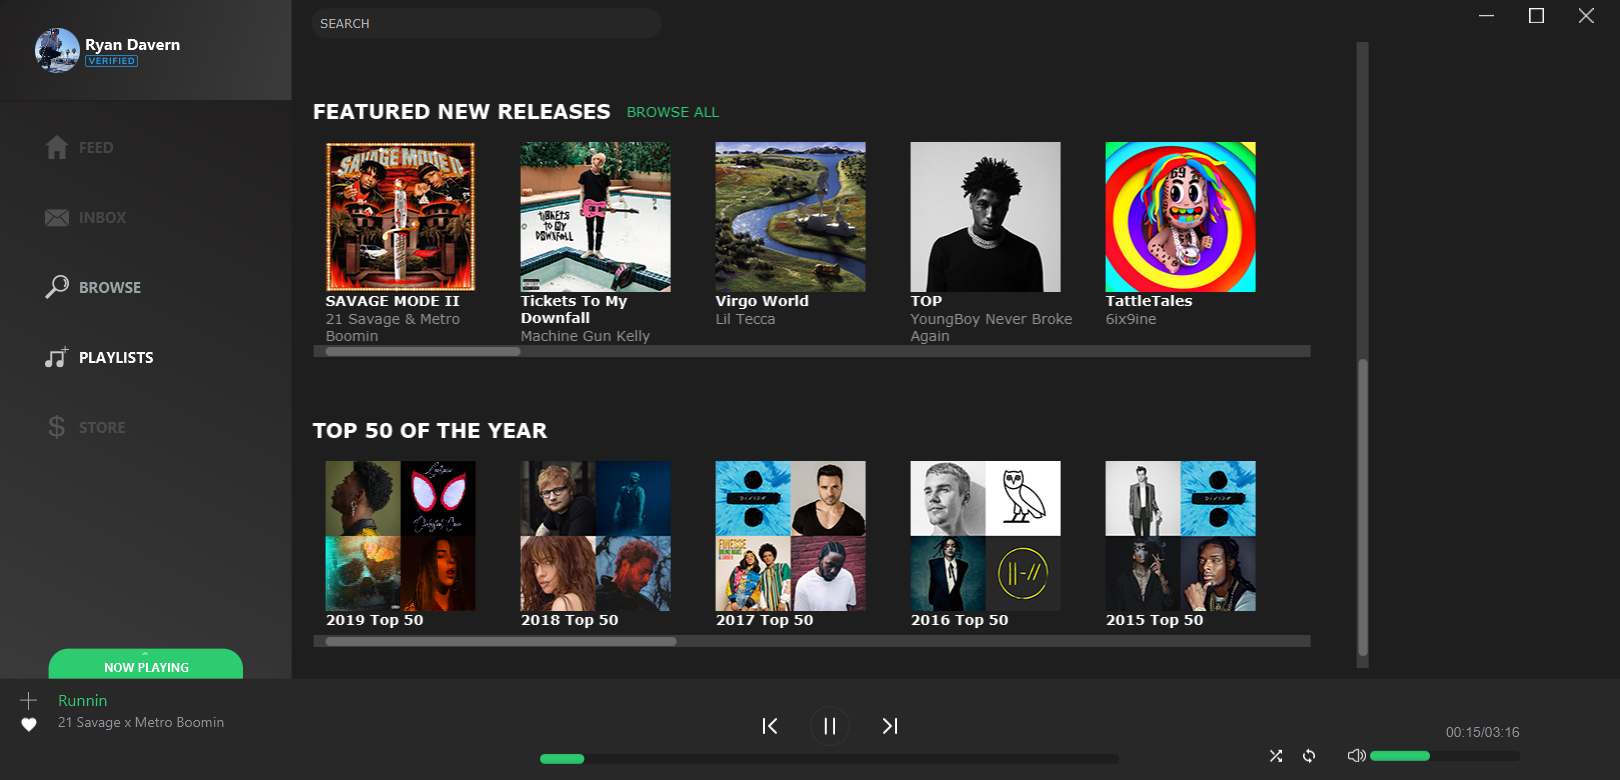 Playlist page also displays featured albums and custom curated playlists from billboard.